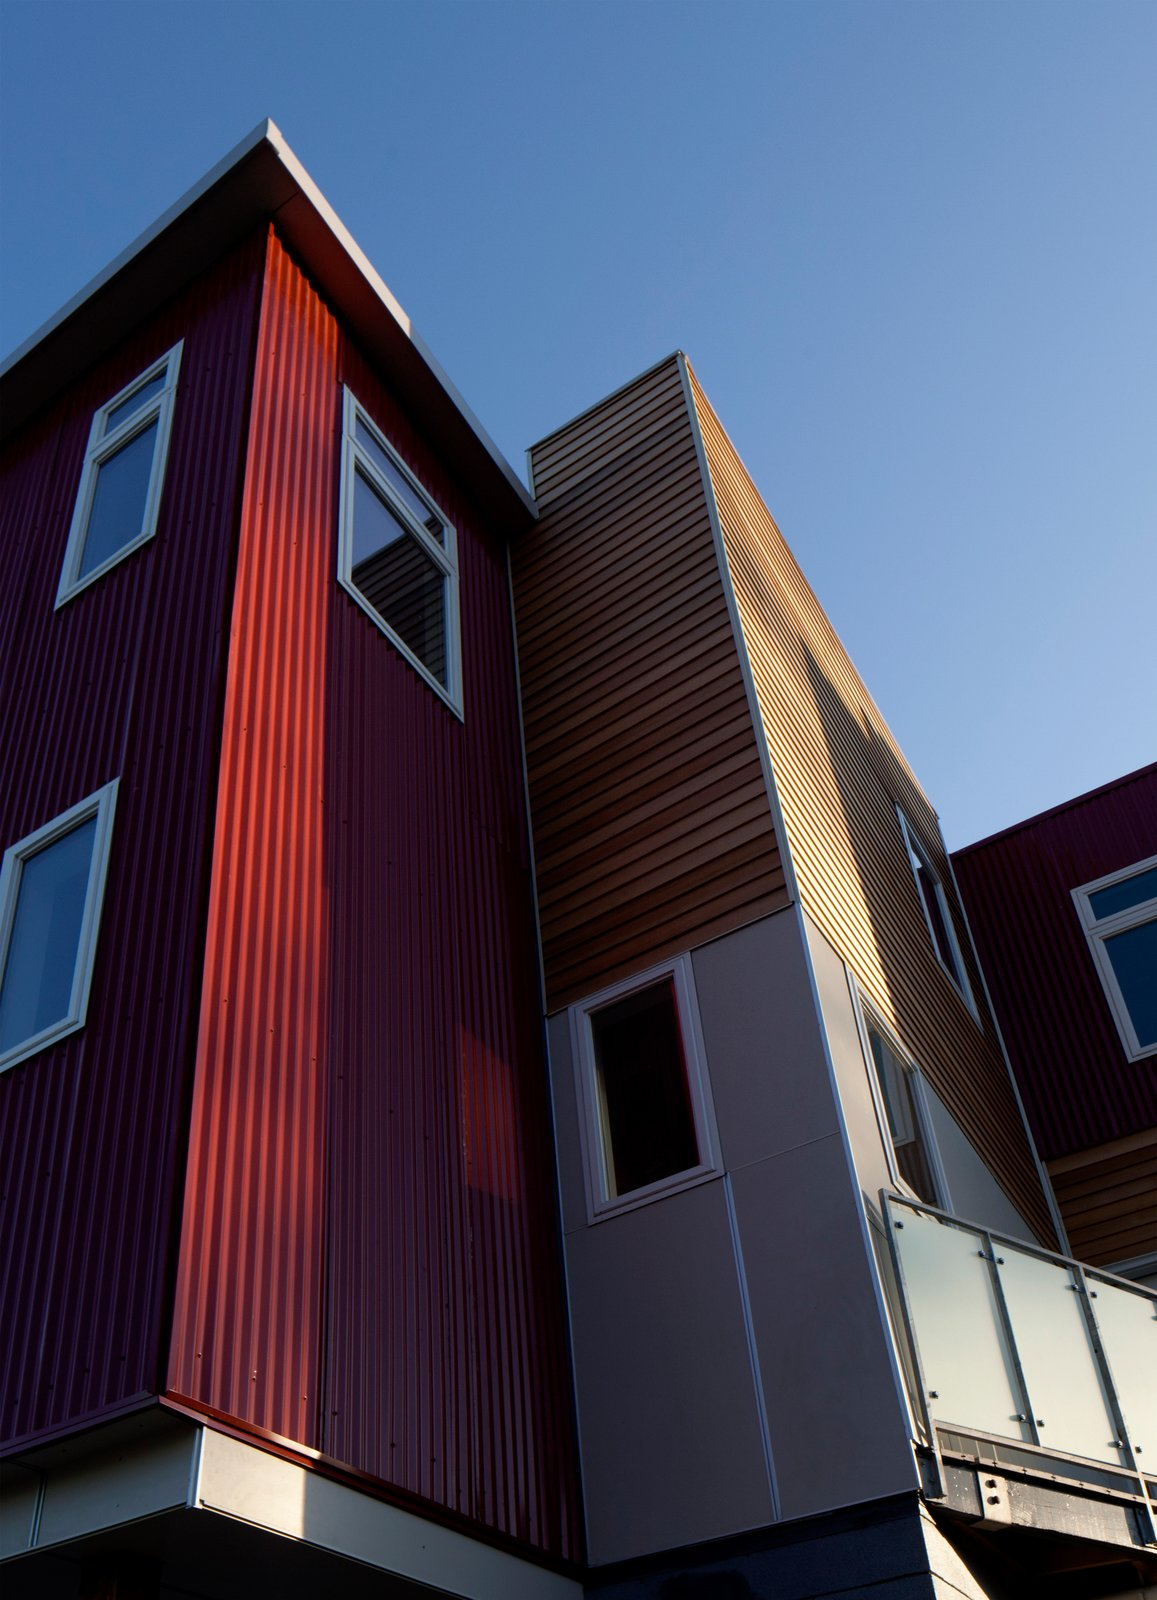 The project site is surrounded by a mix of uses that comprise the residential/commercial corridor. The isolation of the triangular island allowed for a more contemporary palette and articulation, while maintaining massing and density appropriate to the adjacent historic working class neighborhood.  Croghan's Edge Townhomes by mossArchitects